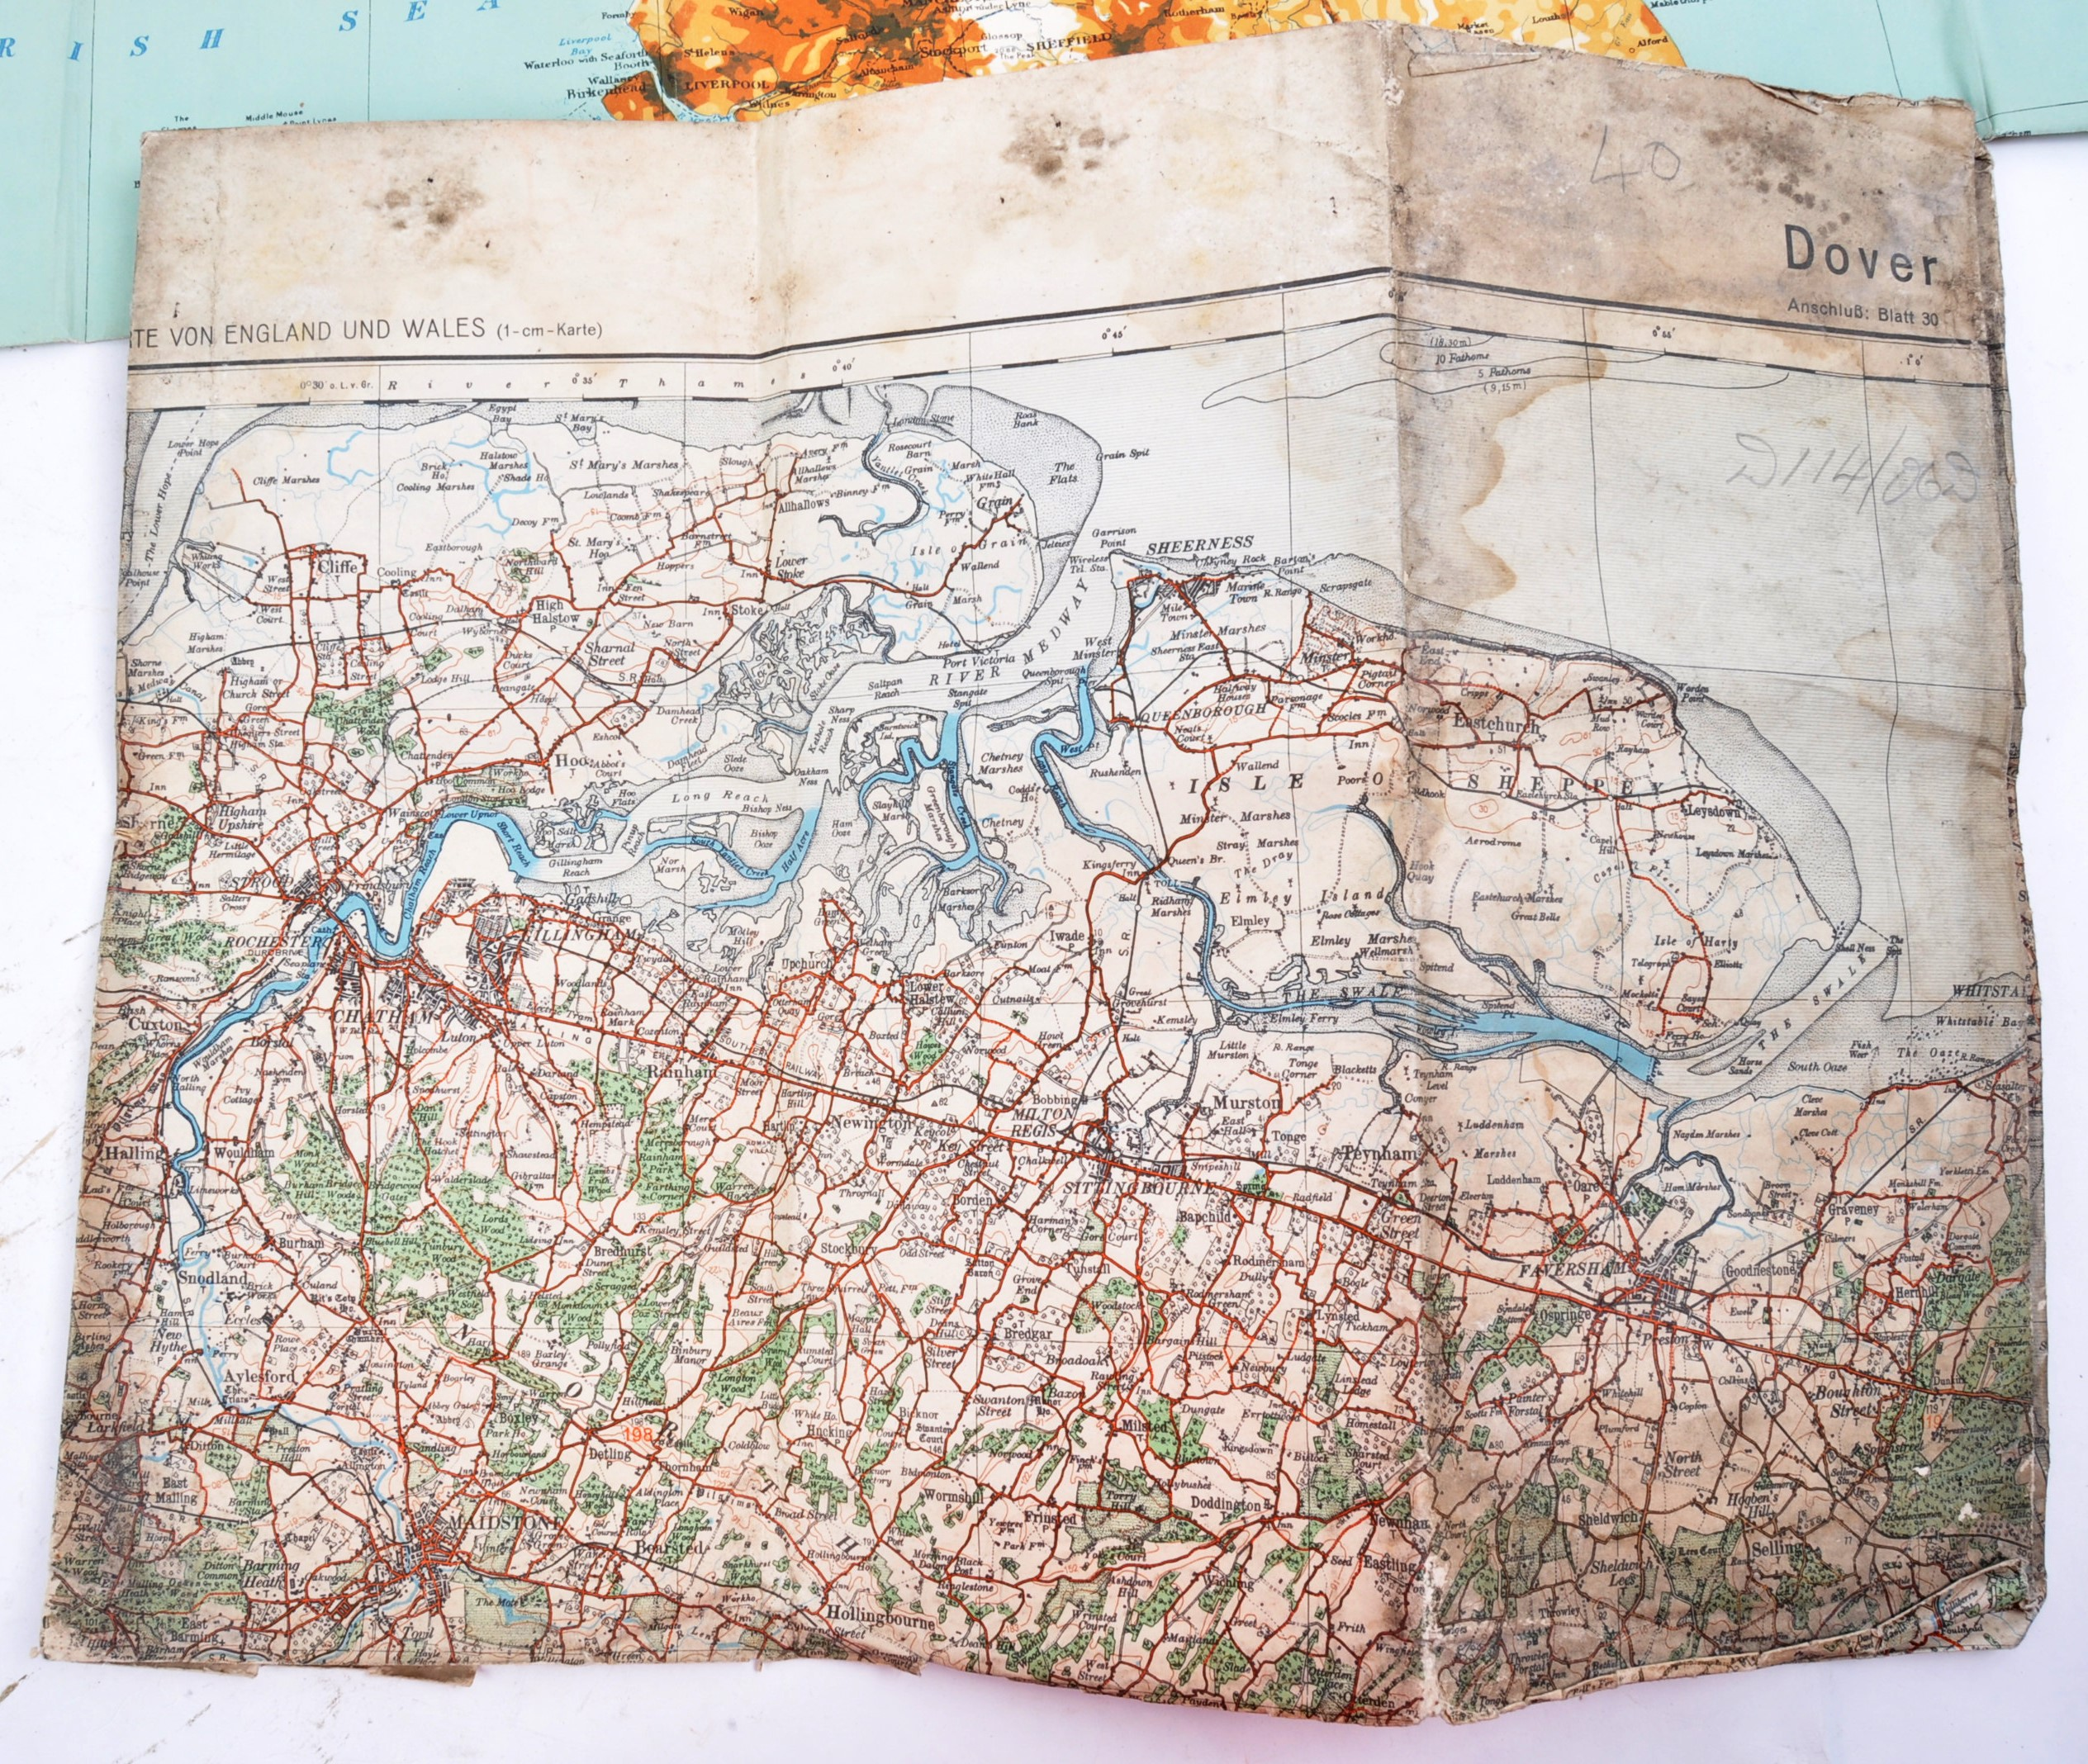 COLLECTION OF X6 ASSORTED WWII GERMAN ARMY MAPS - Image 5 of 10